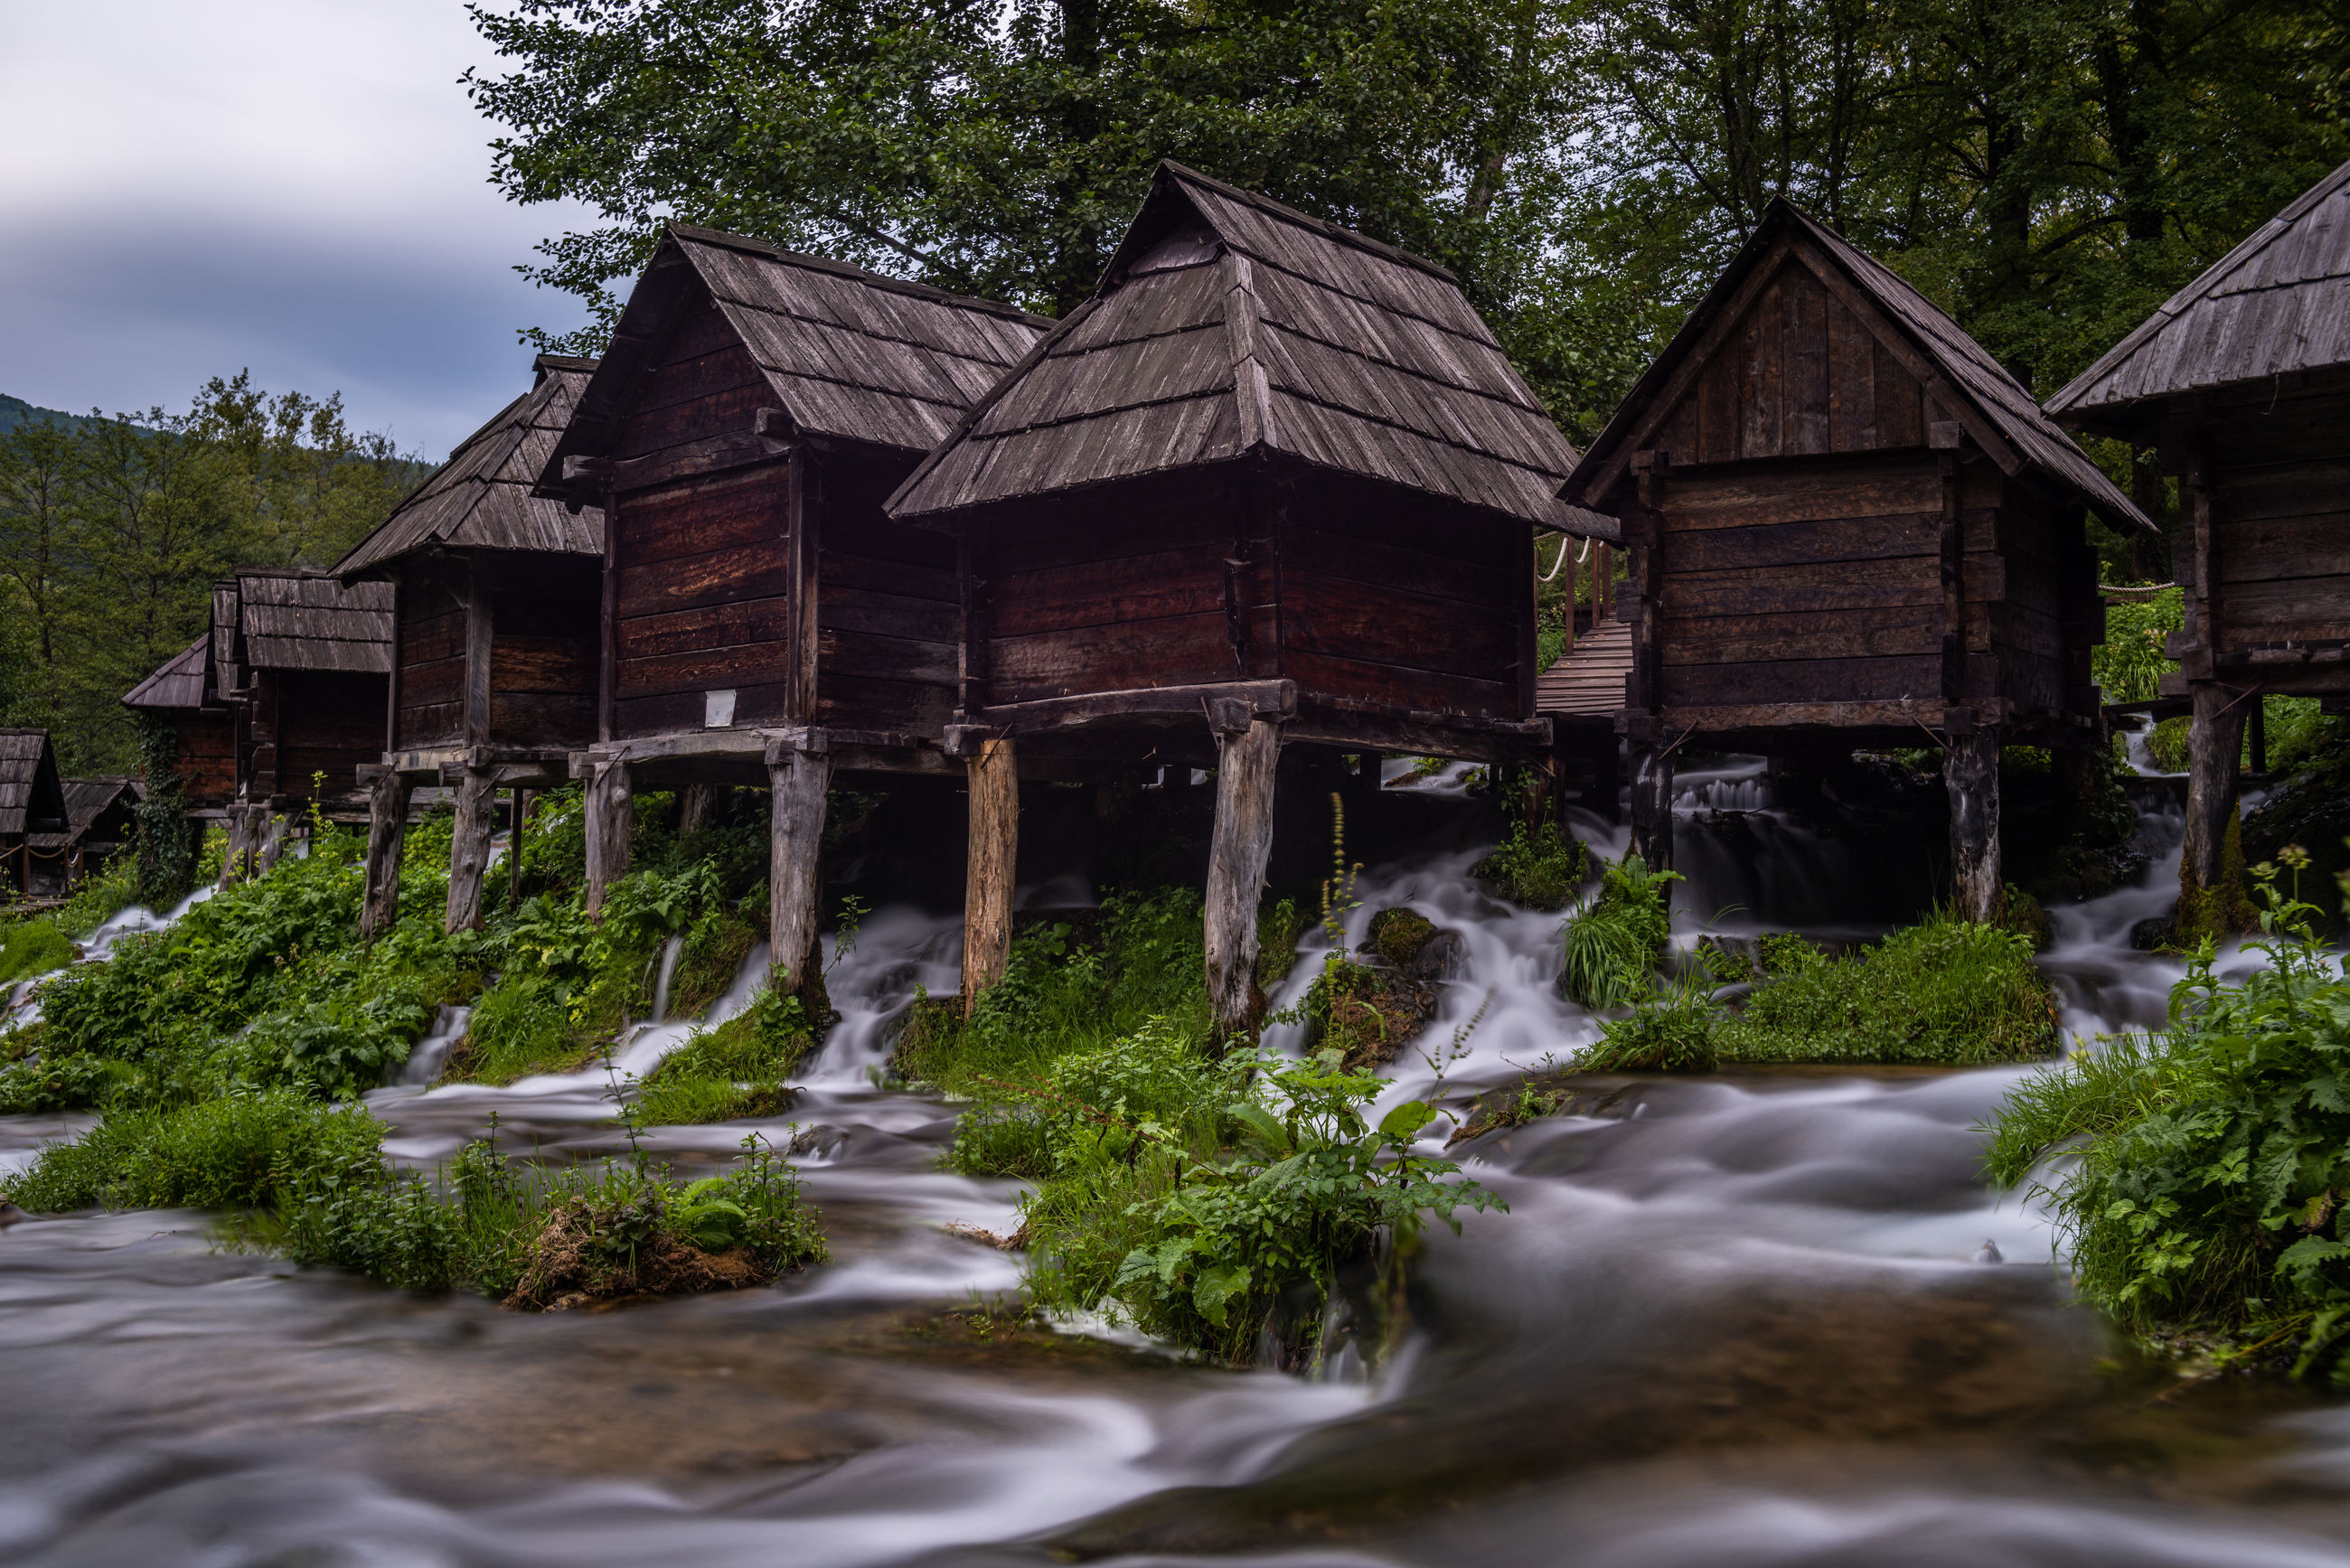 Water flowing by building against trees